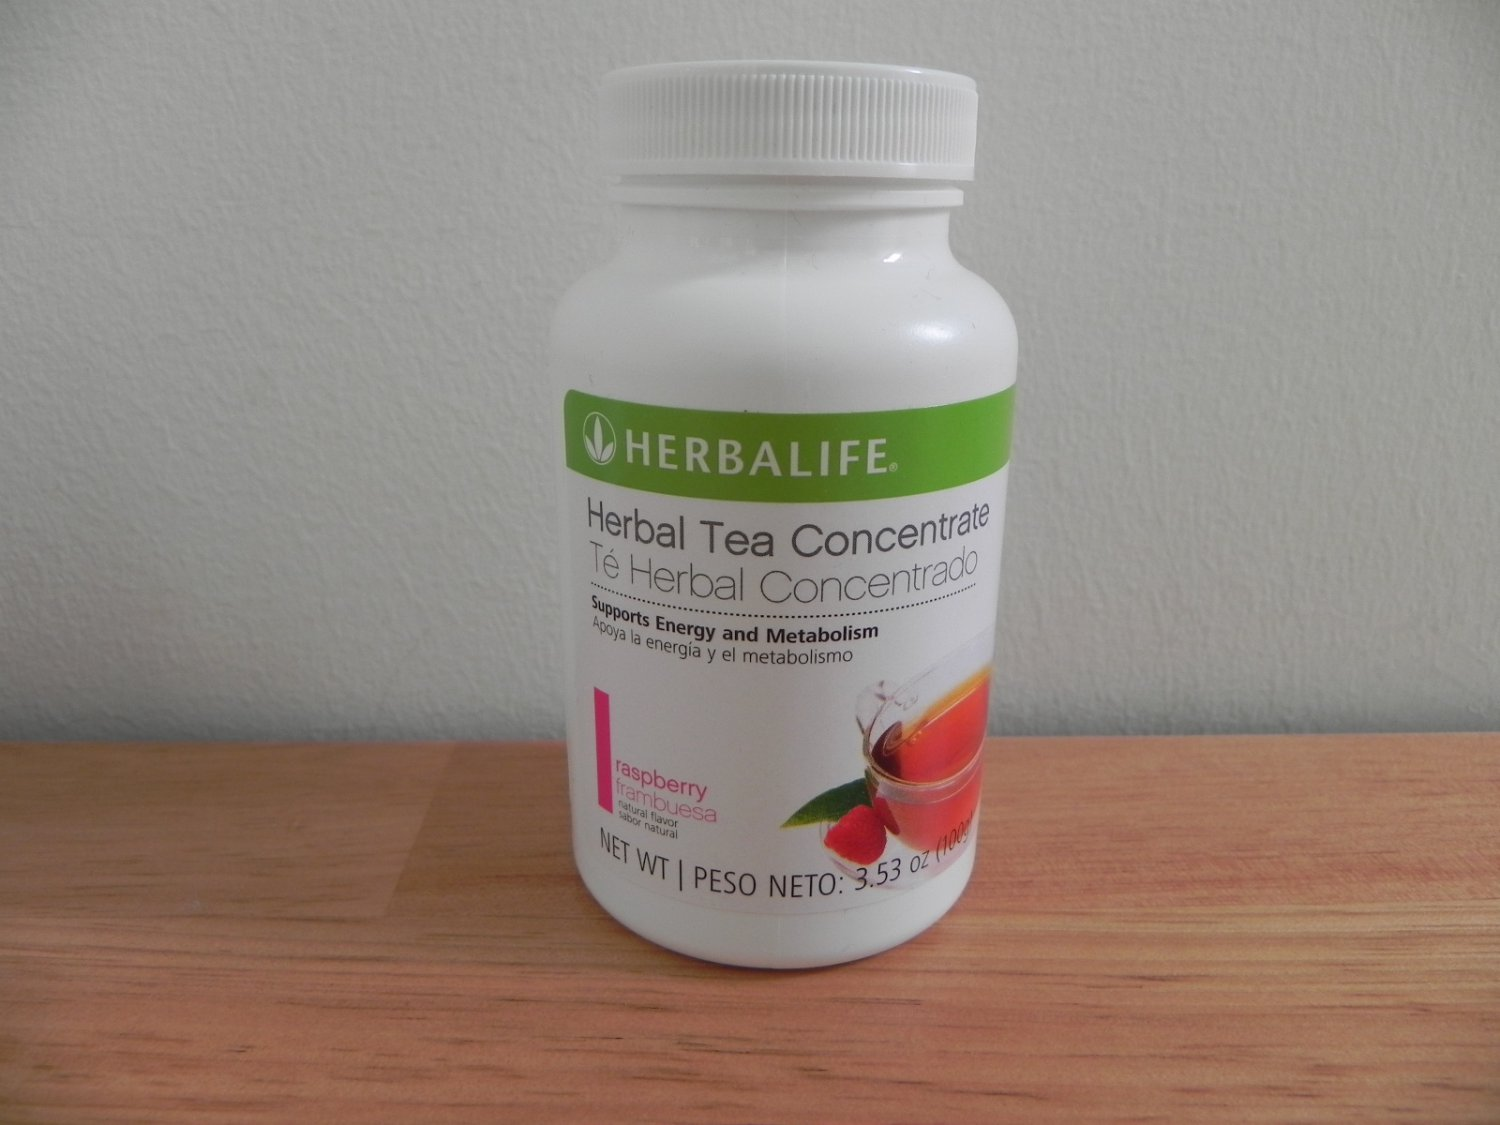 Herbalife Herbal Tea Concentrate 3.53oz 100g Raspberry Fresh exp 11/2016 or better